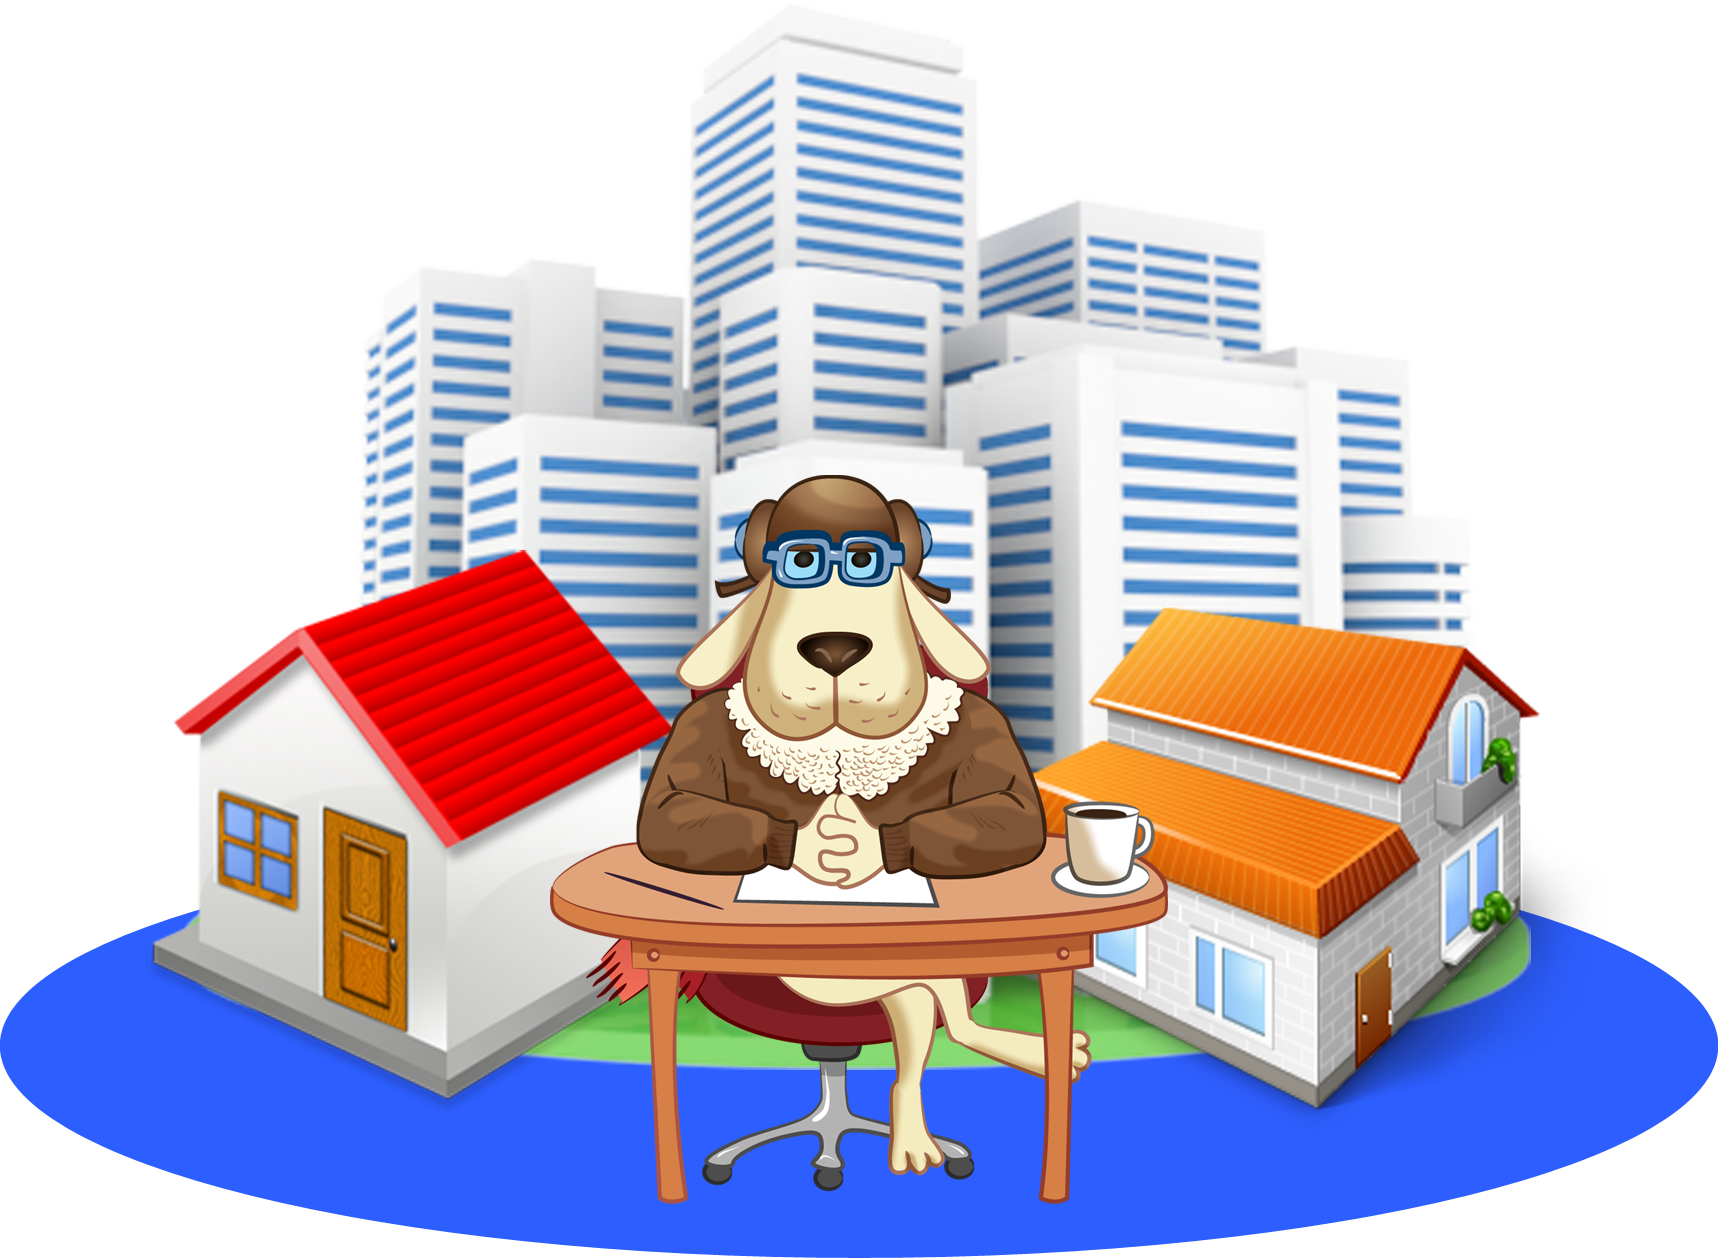 Baddas-Tinker Realhound Corporate Real Estate CRM